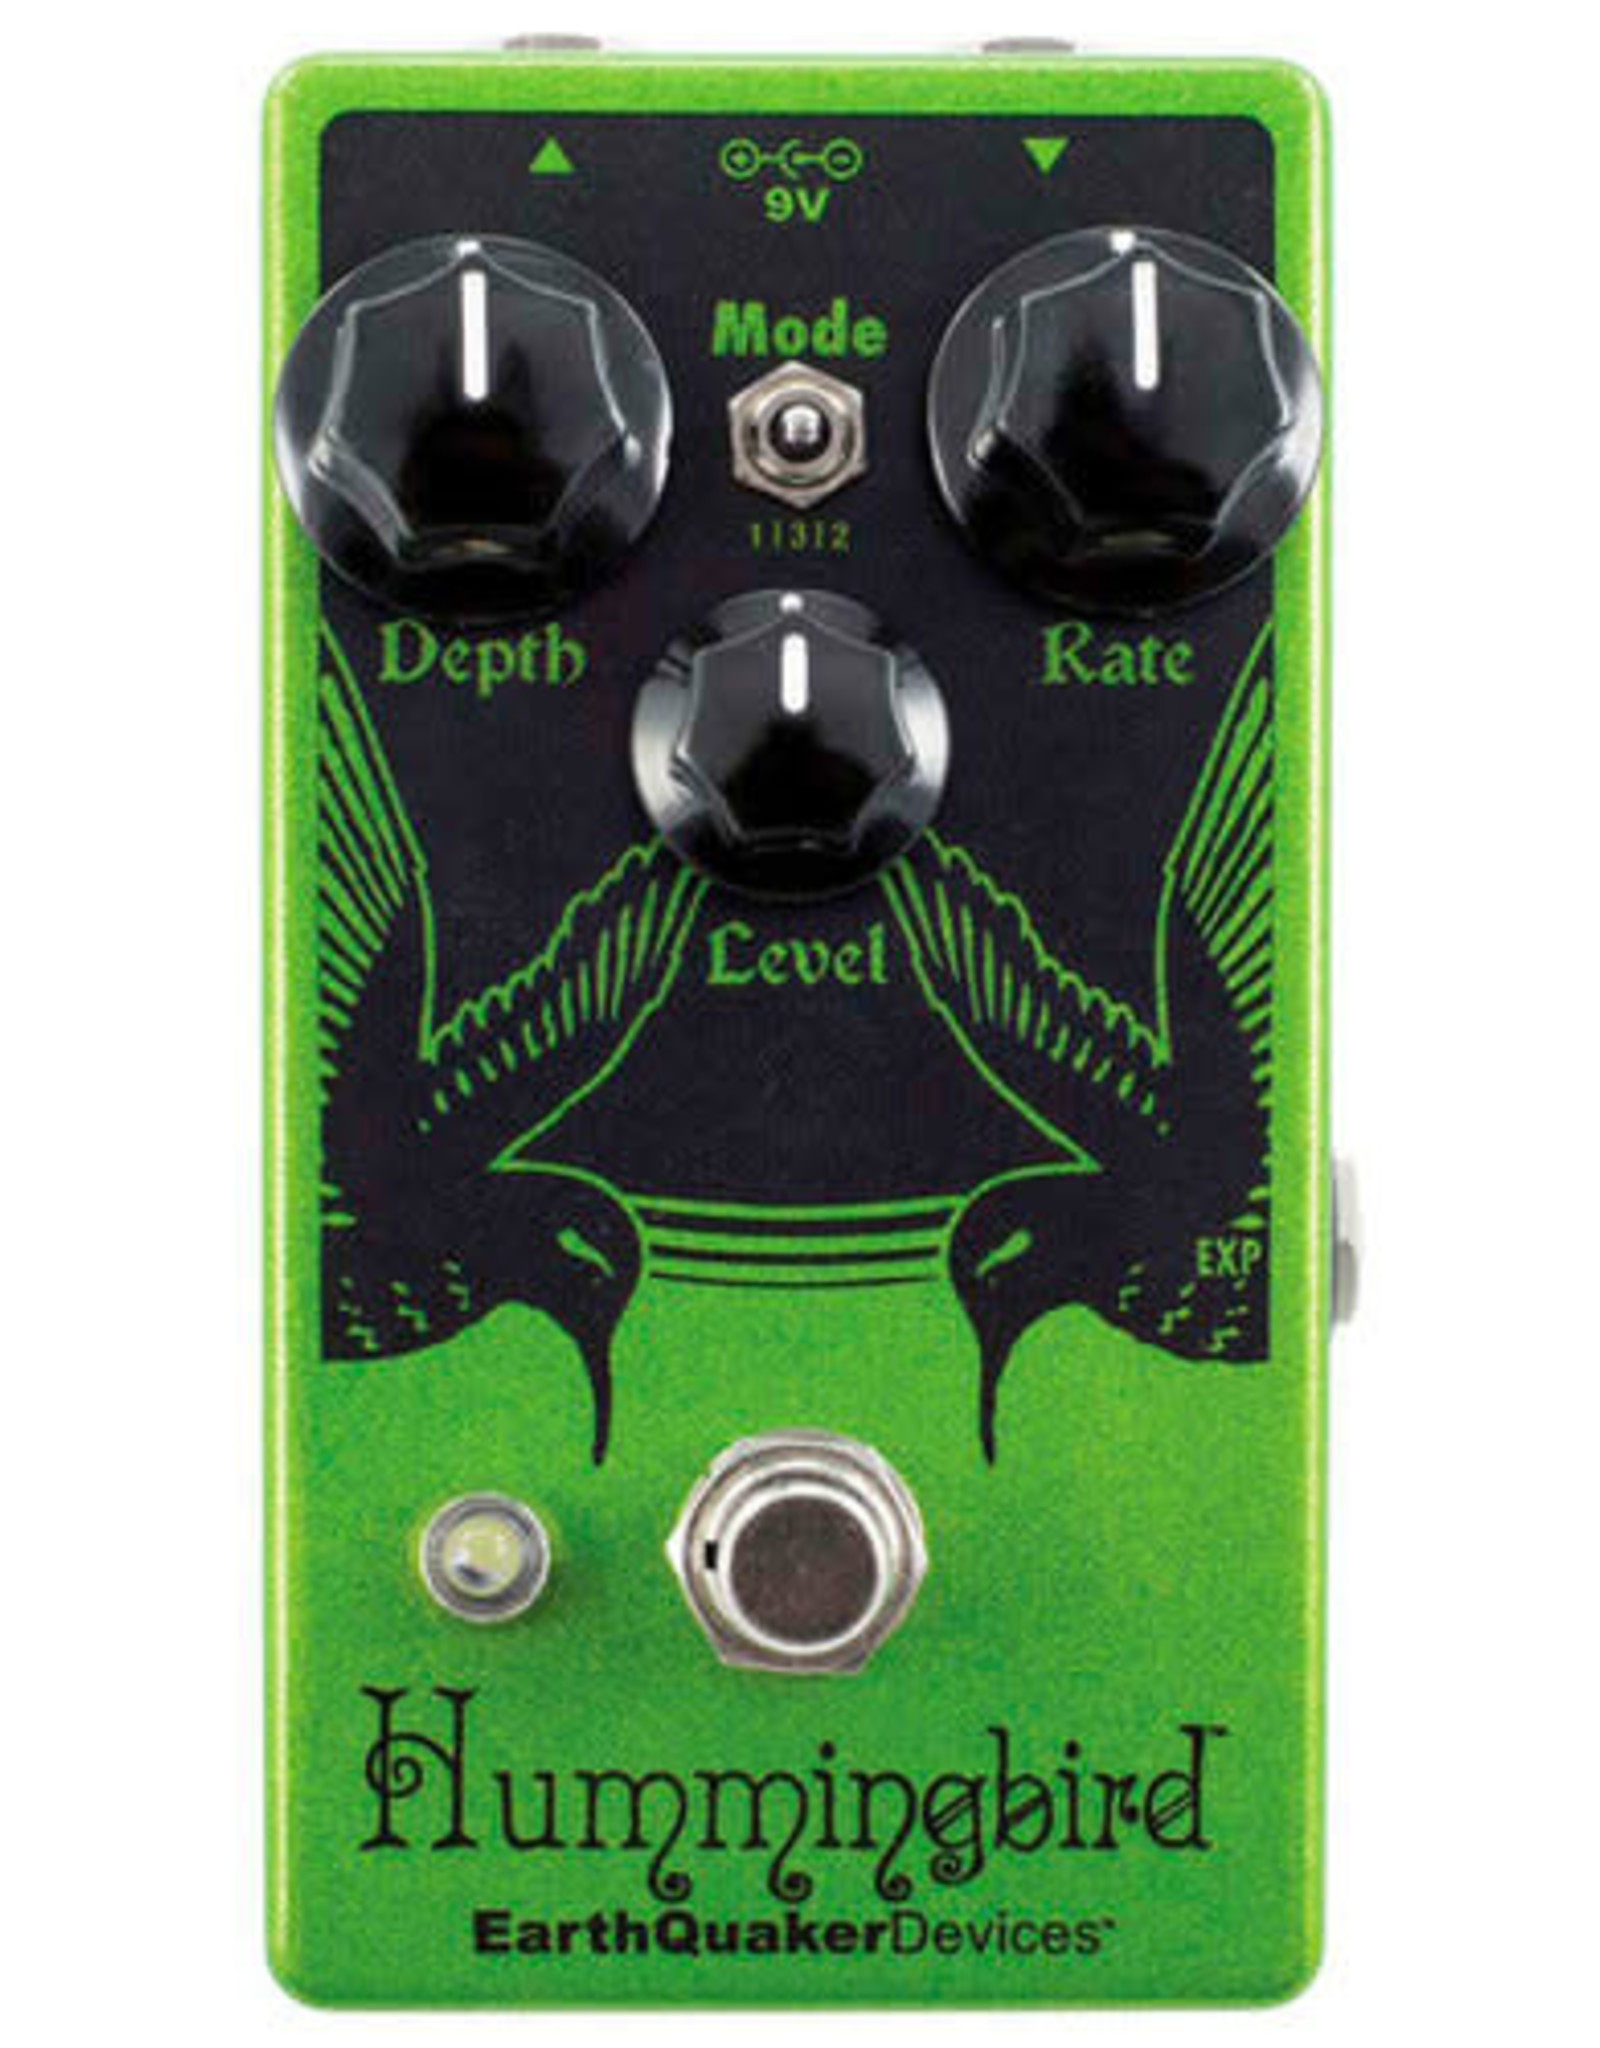 EarthQuaker Devices EarthQuaker Devices Hummingbird V4 Repeat Percussions